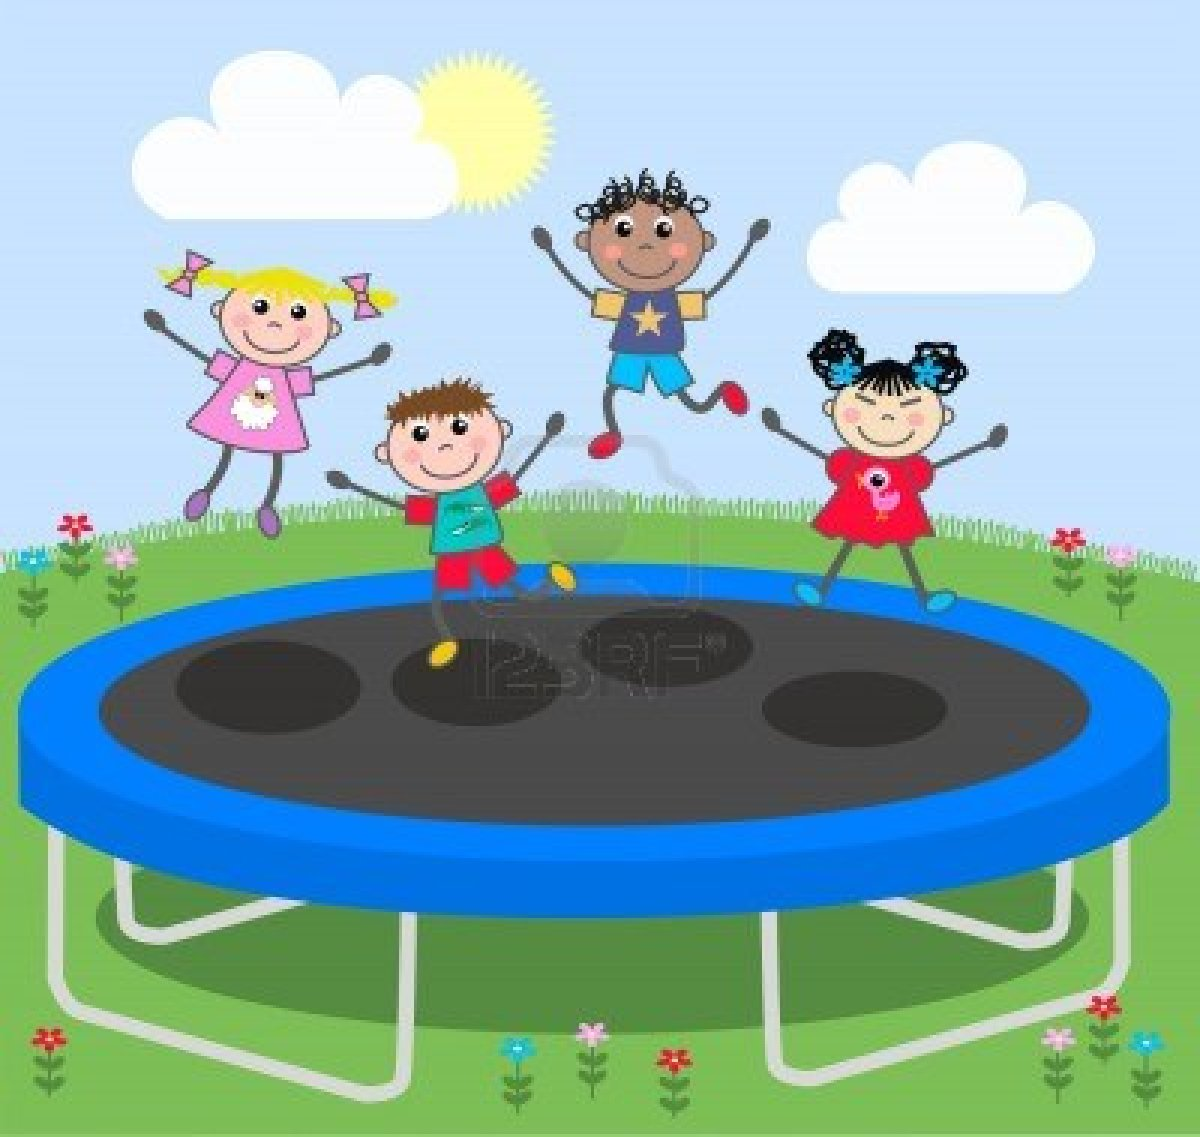 Kids jumping on trampoline clipart.